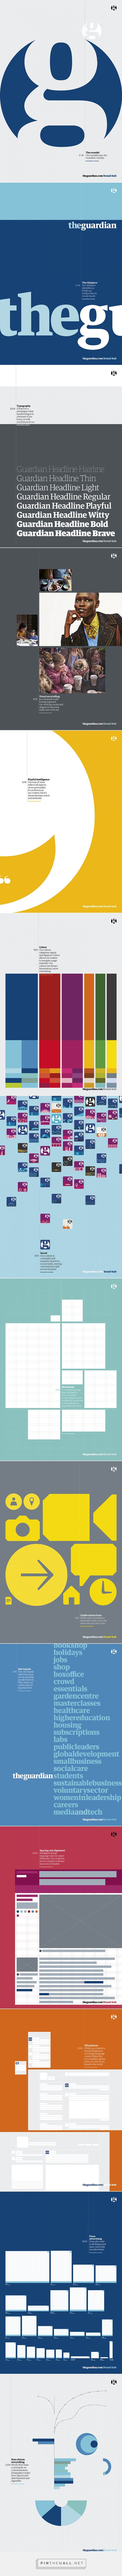 It's Nice That | An insight into The Guardian's newly released brand guidelines #branding - created via http://pinthemall.net